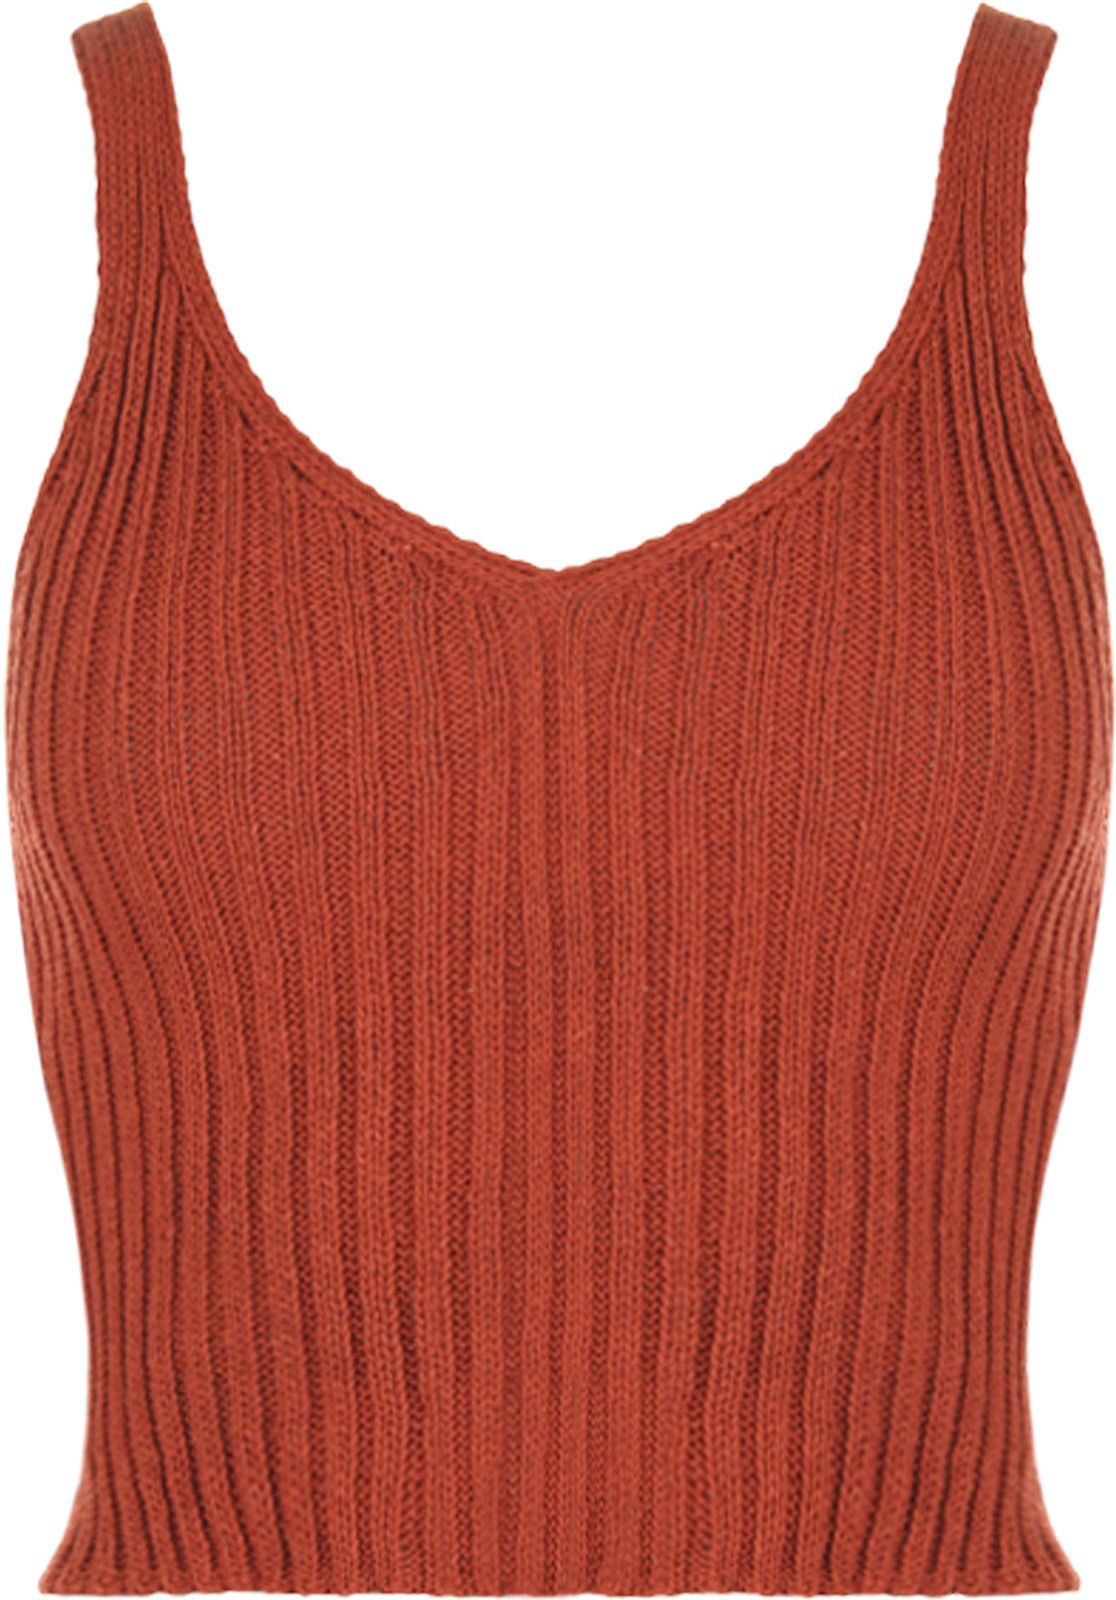 0079e1f434c New Women Ladies V Neck Knitted Ribbed Plain Bralet Crop Top Sleeveless  Vest Top